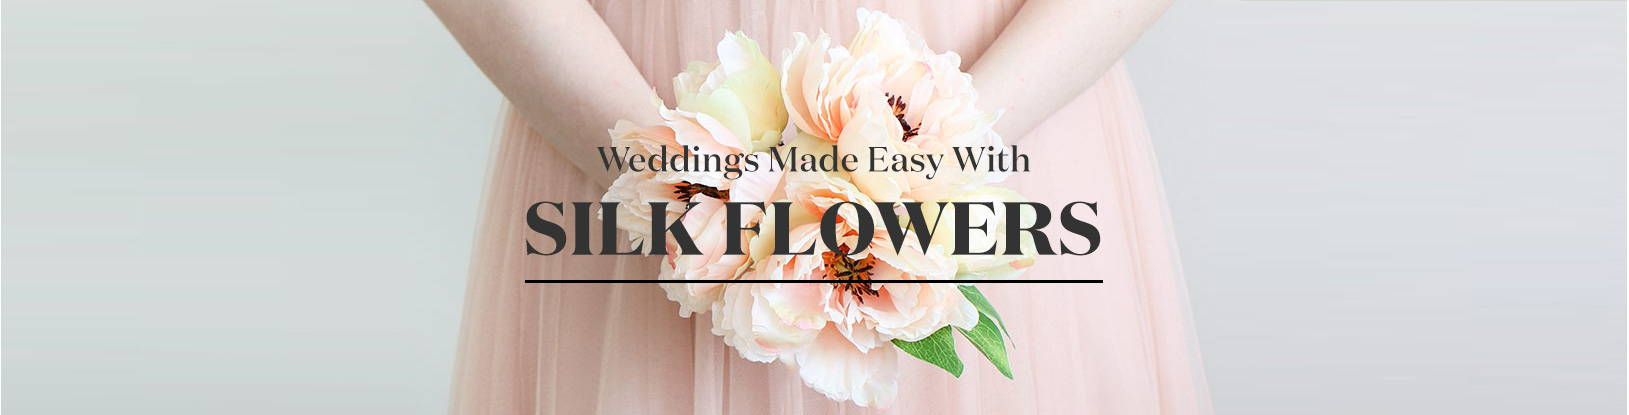 Weddings Made Easy With Artificial Flowers